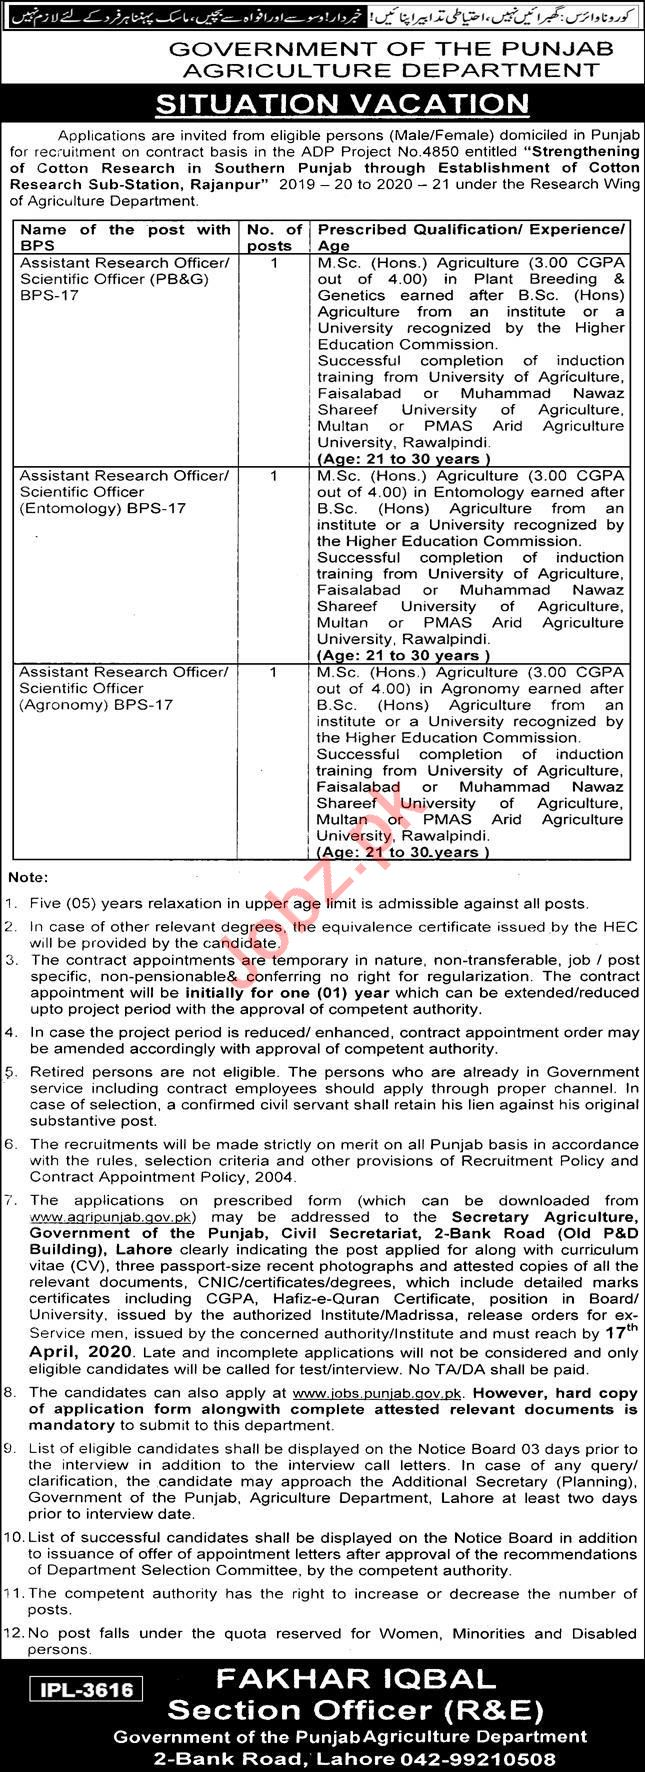 Cotton Research Sub Station Rajanpur ADP Project Jobs 2020